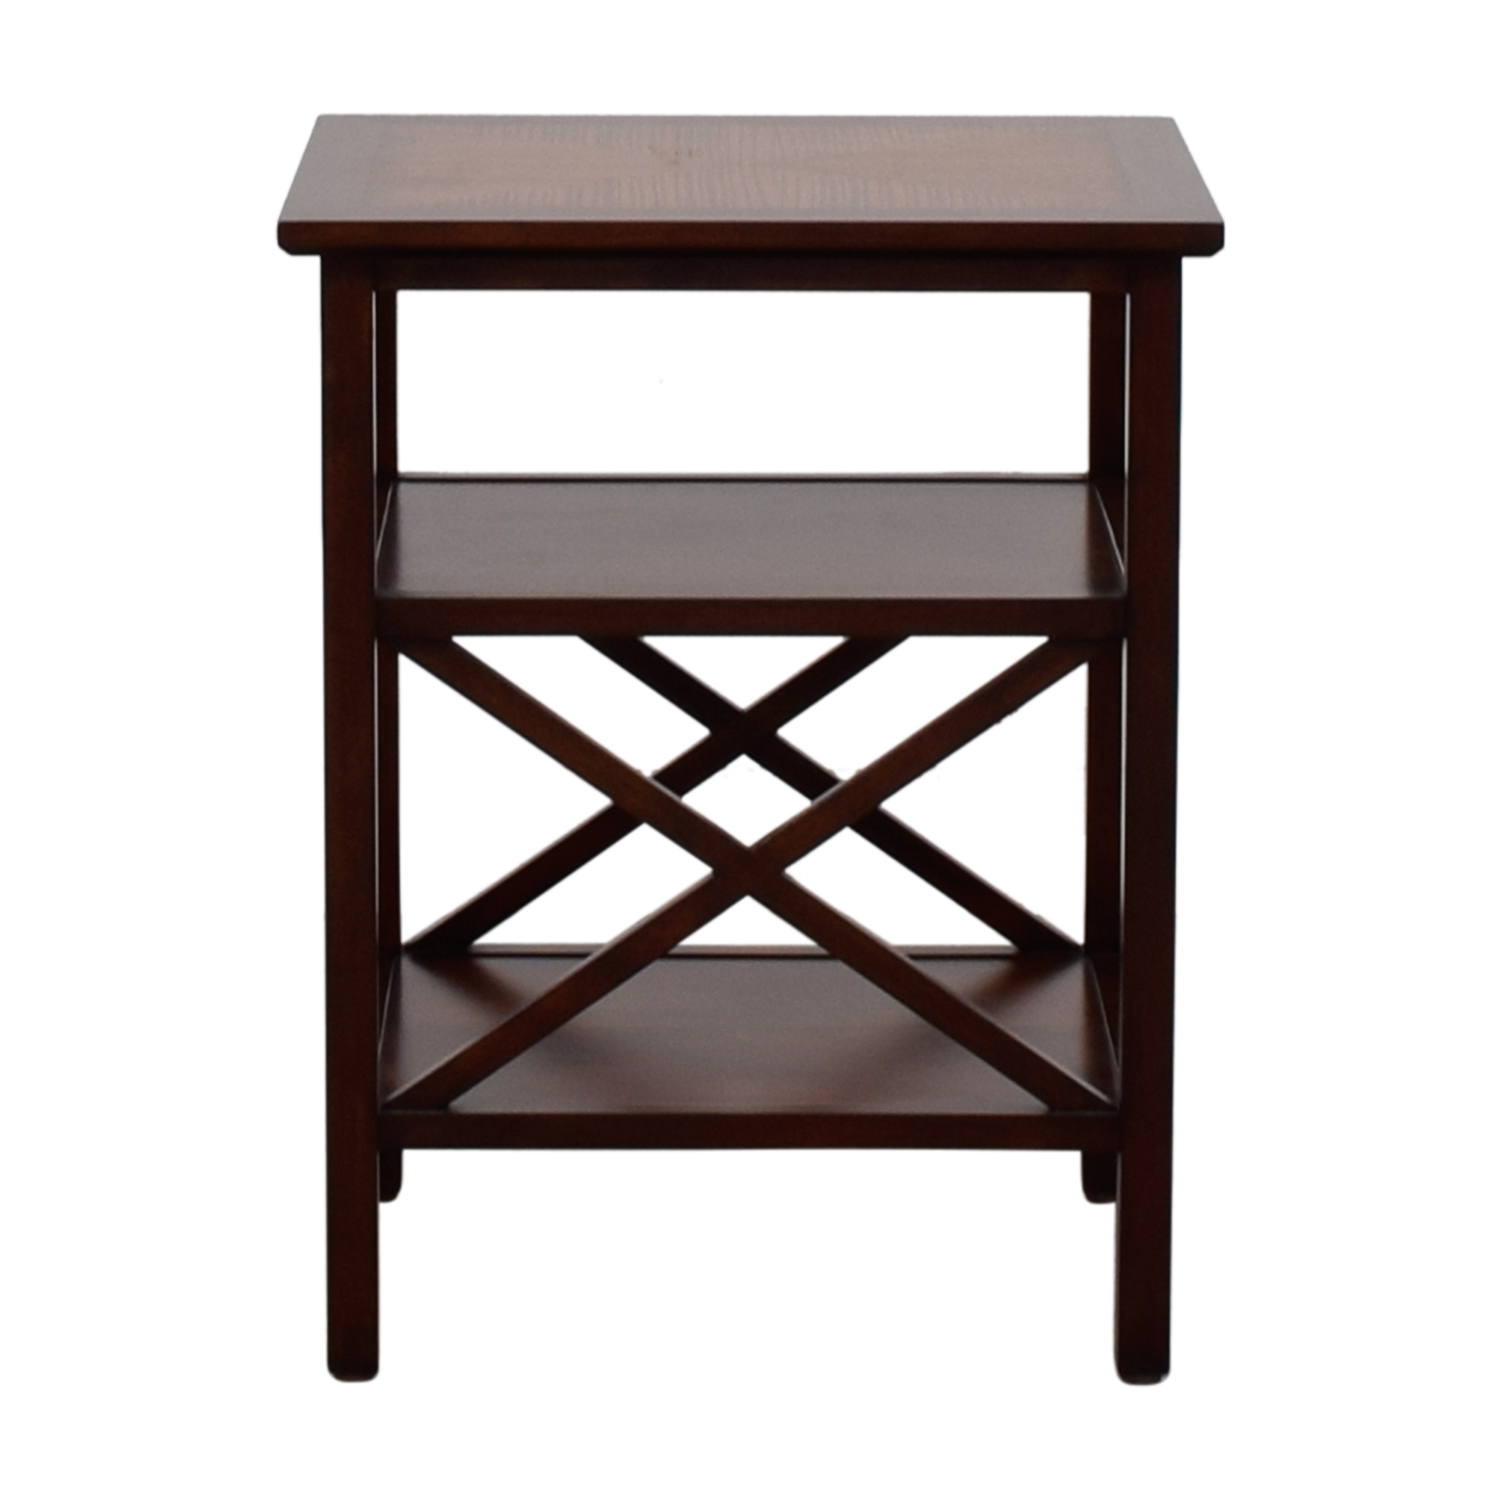 Ethan Allen Ethan Allen Square End Table dimensions